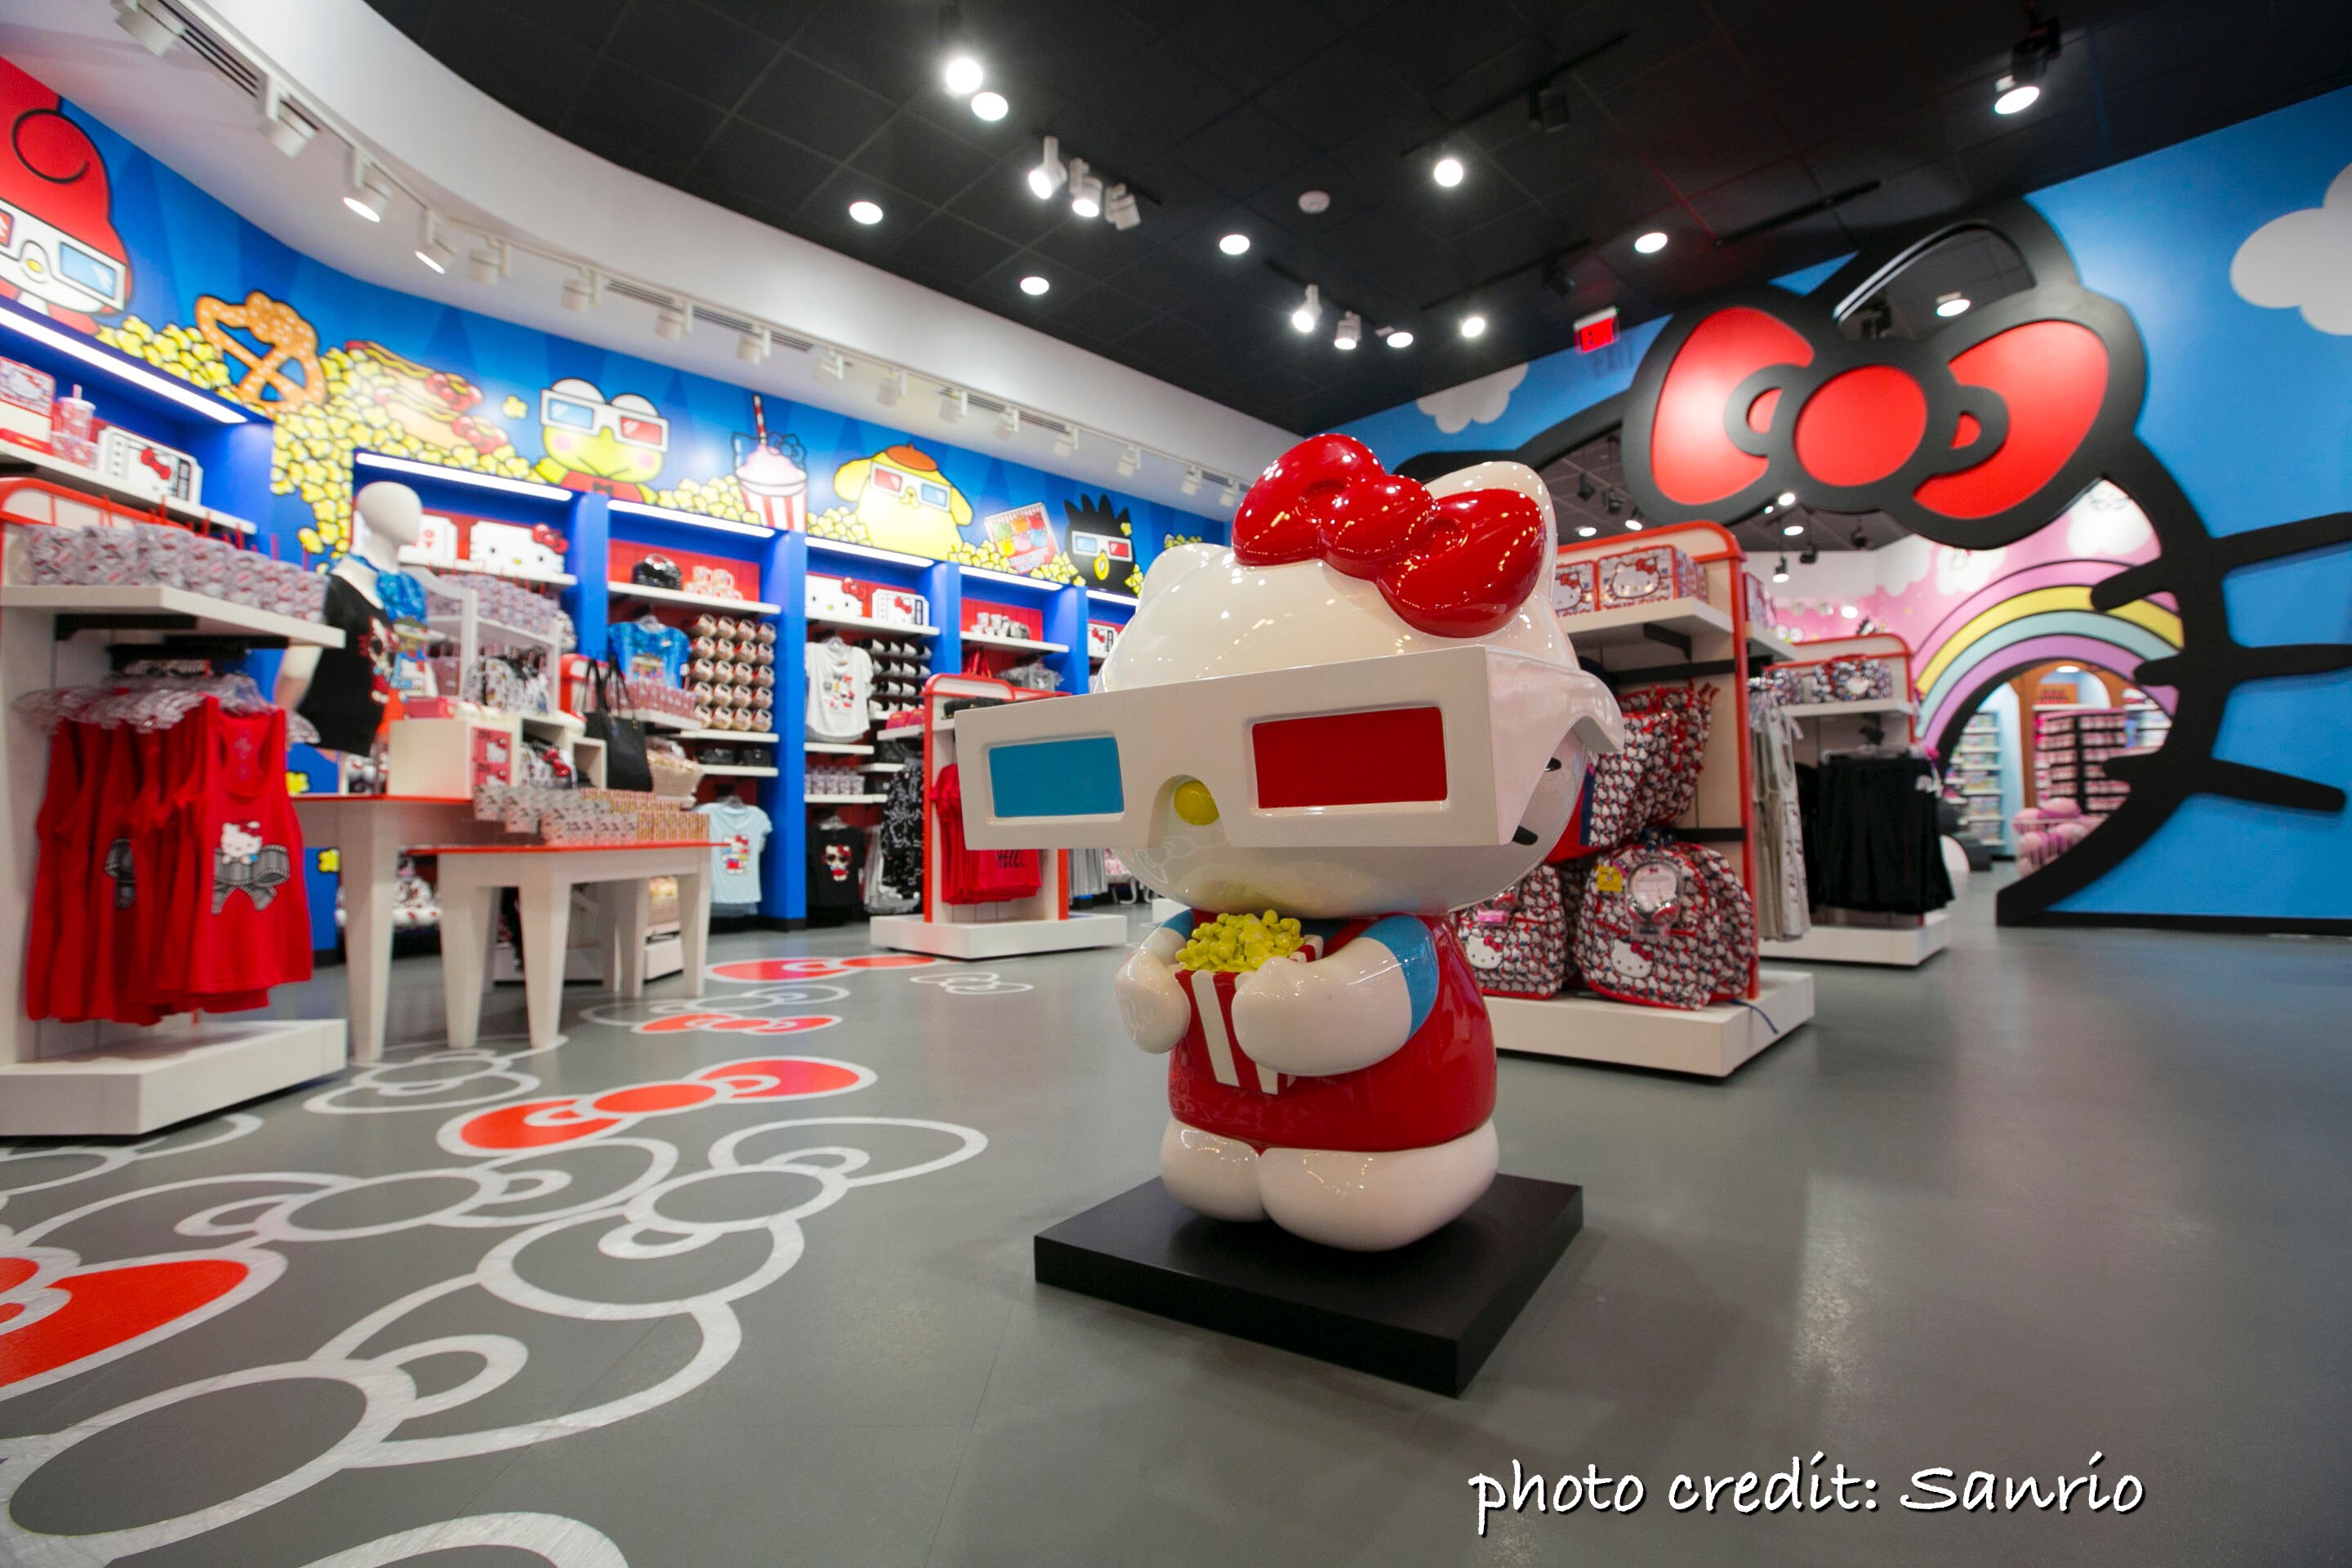 dcd2c60d1 Hello Kitty and Friends at Universal Studios Florida! – hello kitty ...